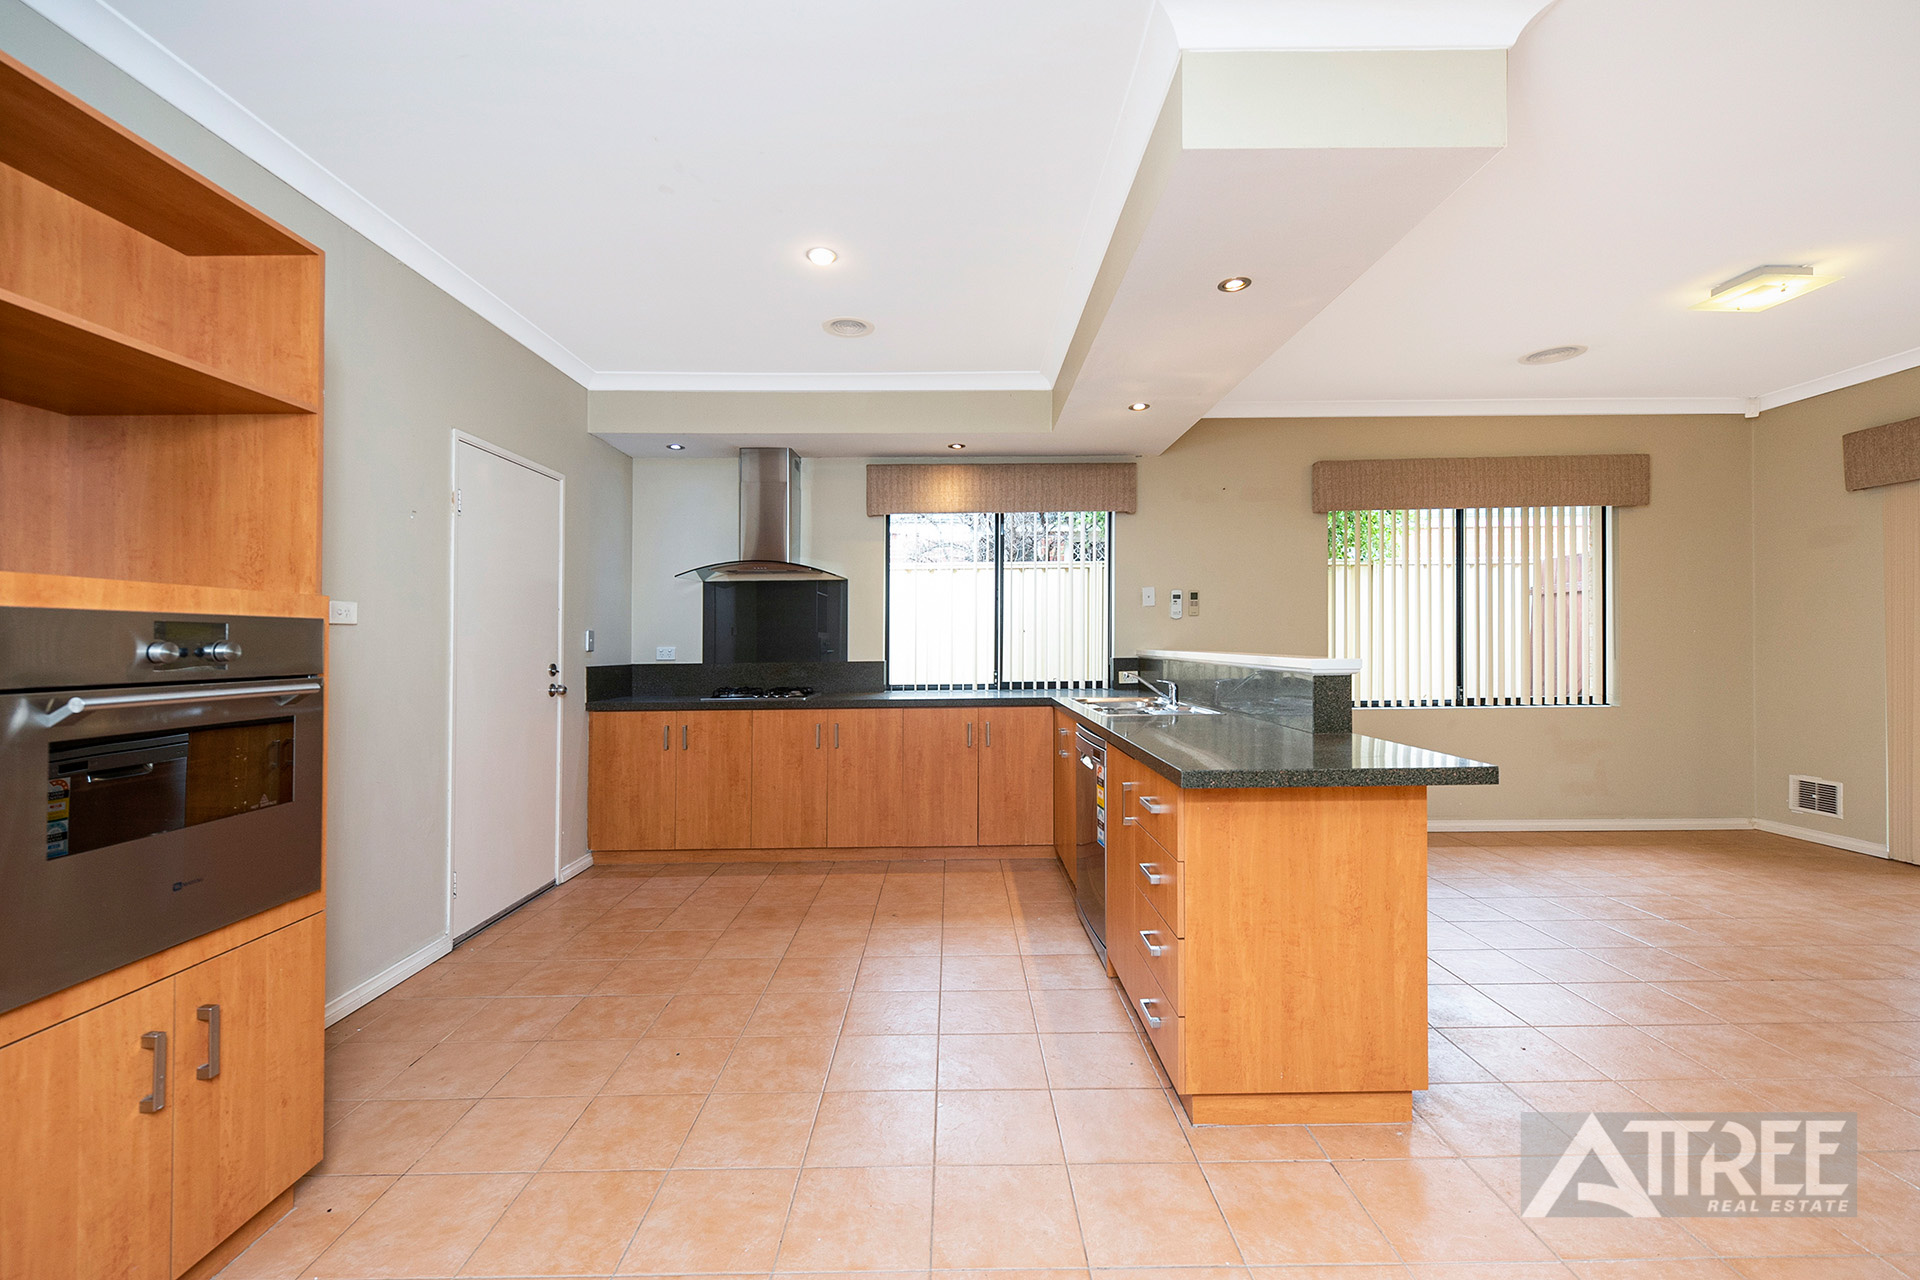 Property for sale in CANNING VALE, 3 Leicester Crescent : Attree Real Estate